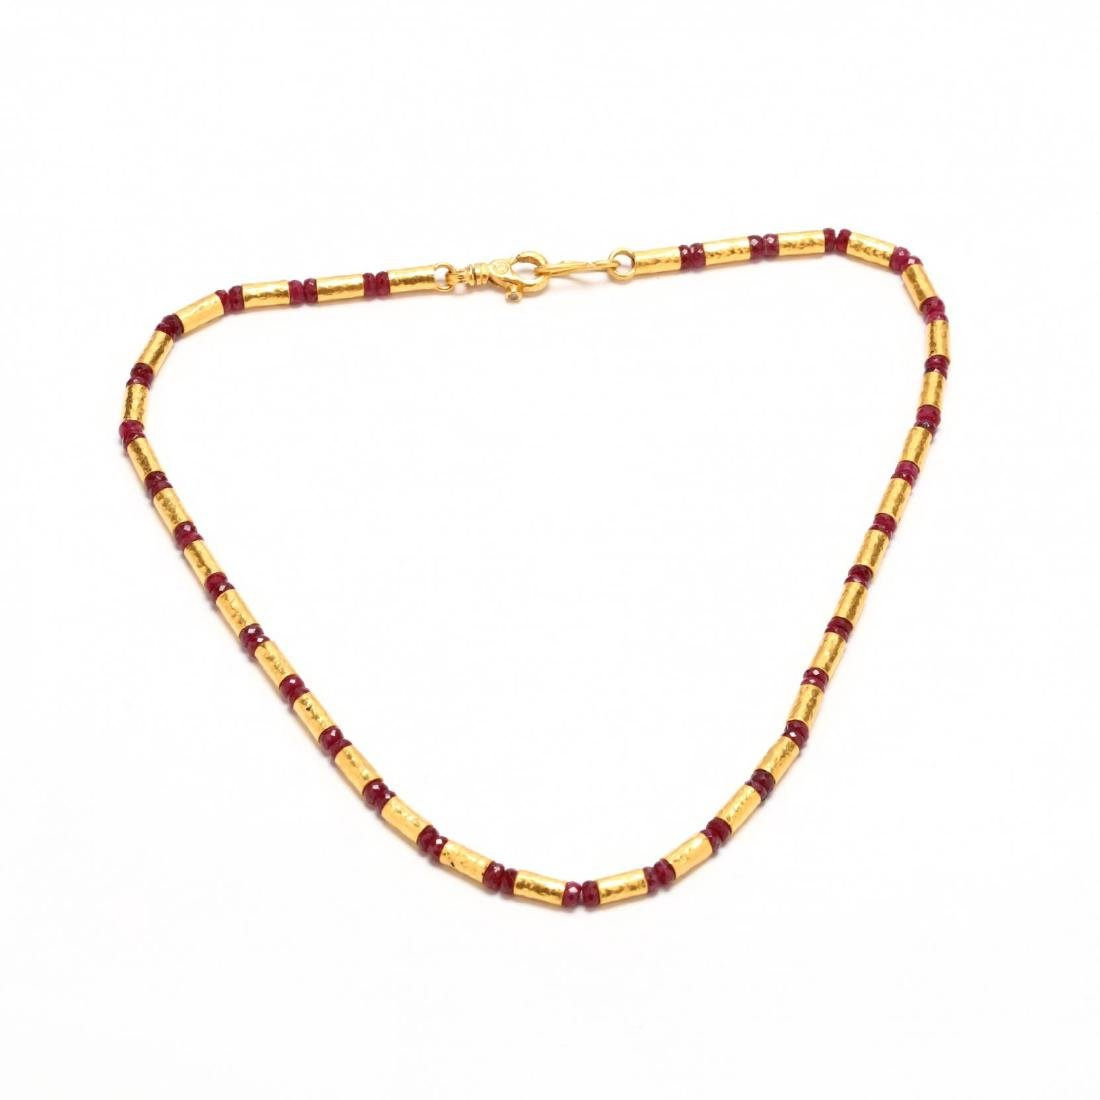 24KT Gold and Ruby Necklace, Gurhan